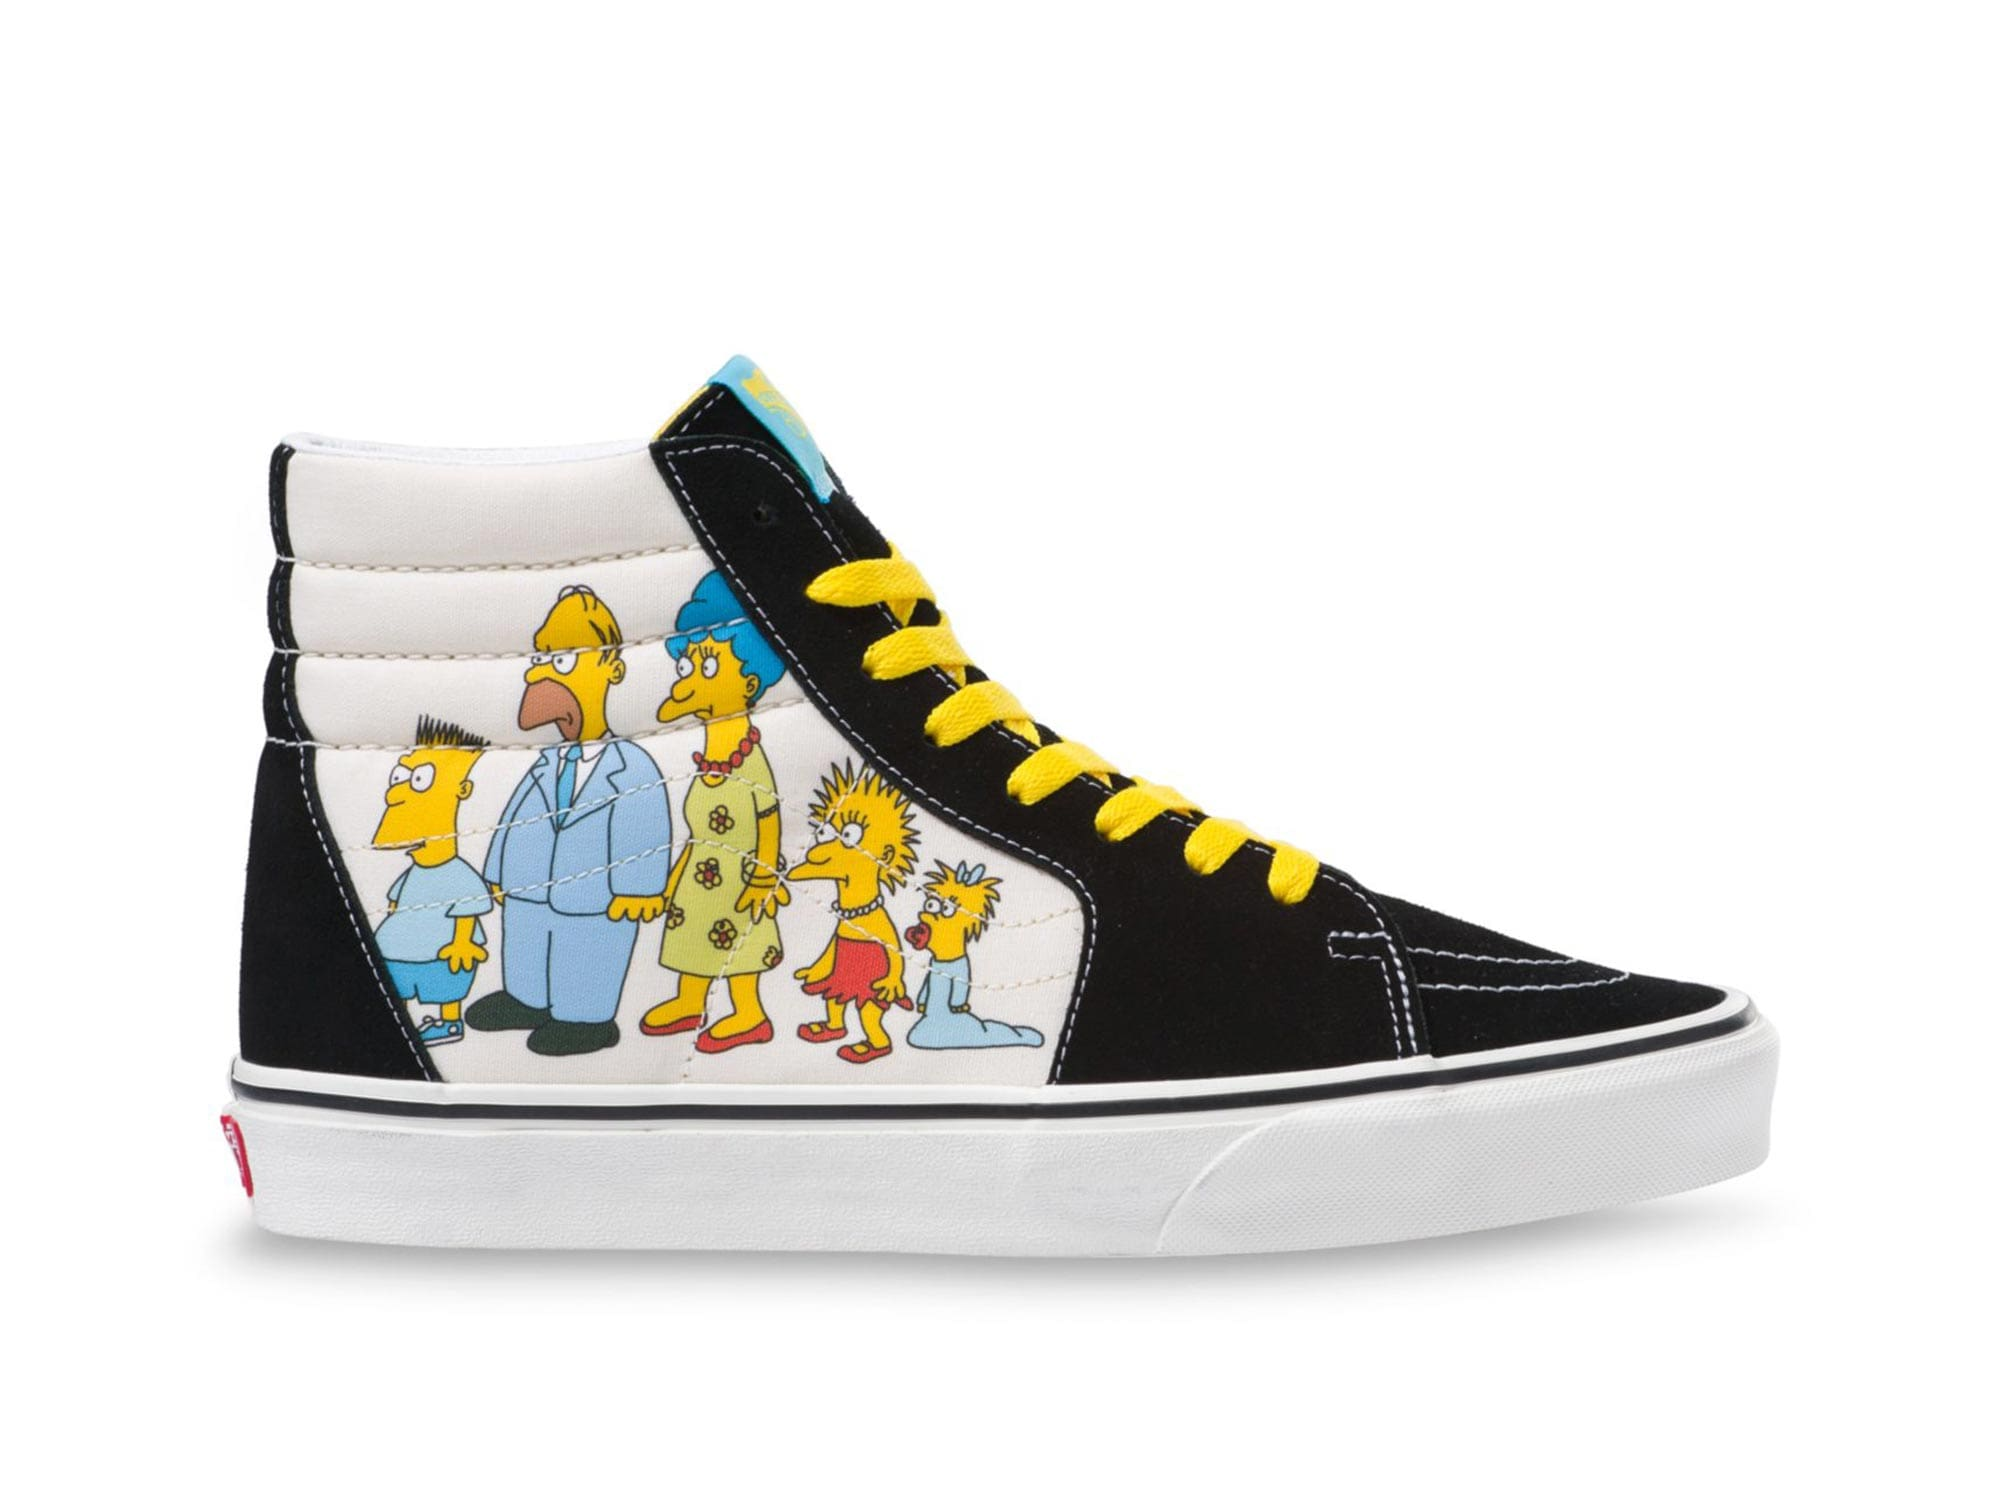 Zapatilla Vans Sk8-Hi The Simpsons 1987-2020 Unisex Negro